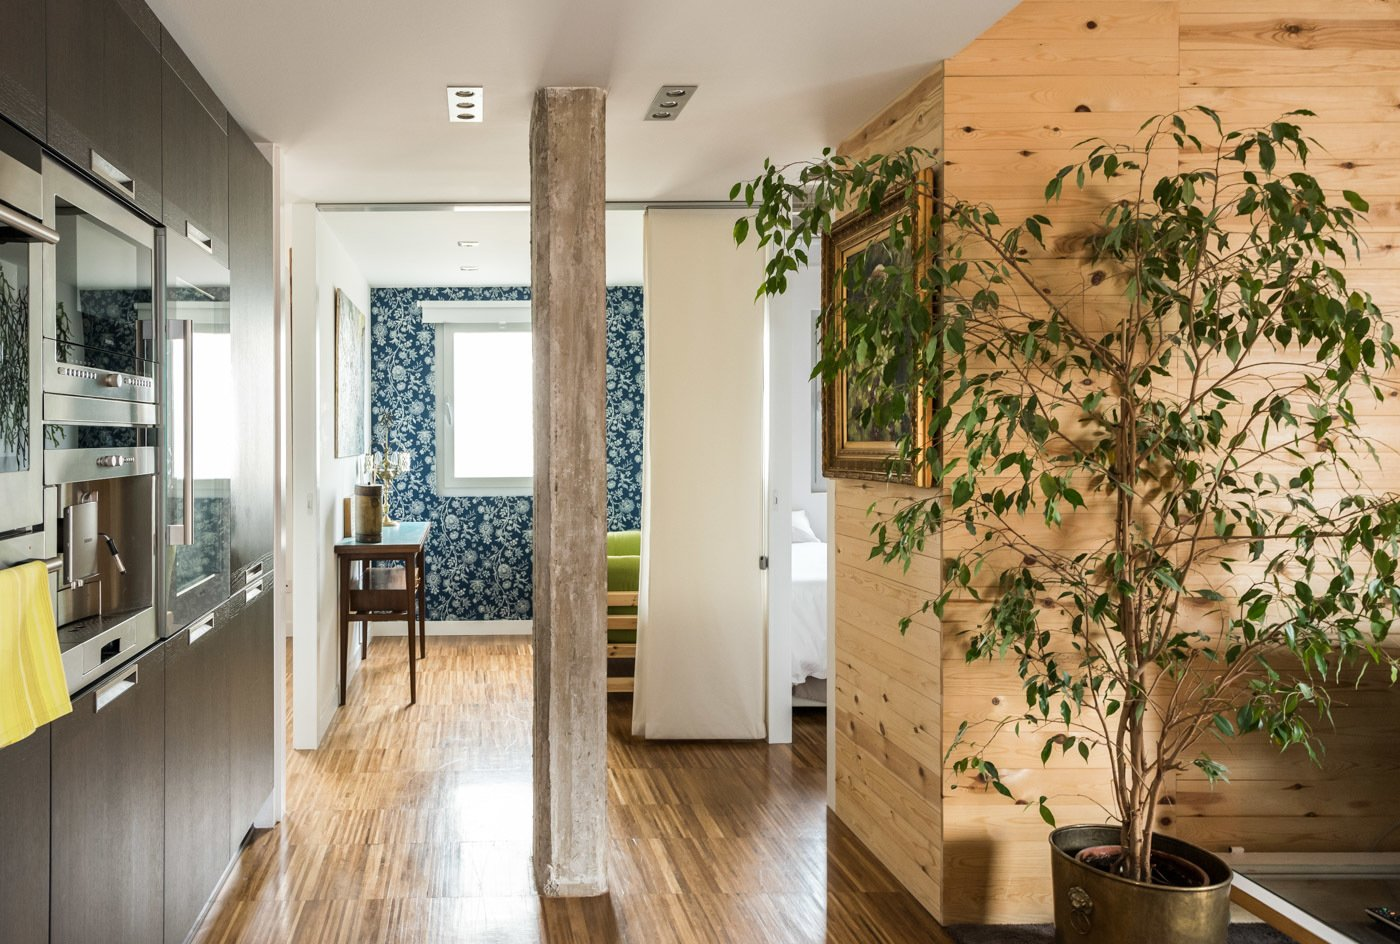 Office, Study Room Type, and Medium Hardwood Floor  In the background are the bedrooms. On the right with a wall clad in pine wood, on the center with a sofa bed in a small multipurpose space, and on the left, the master bedroom.  Echávarri house 100m2. Loft between gardens.